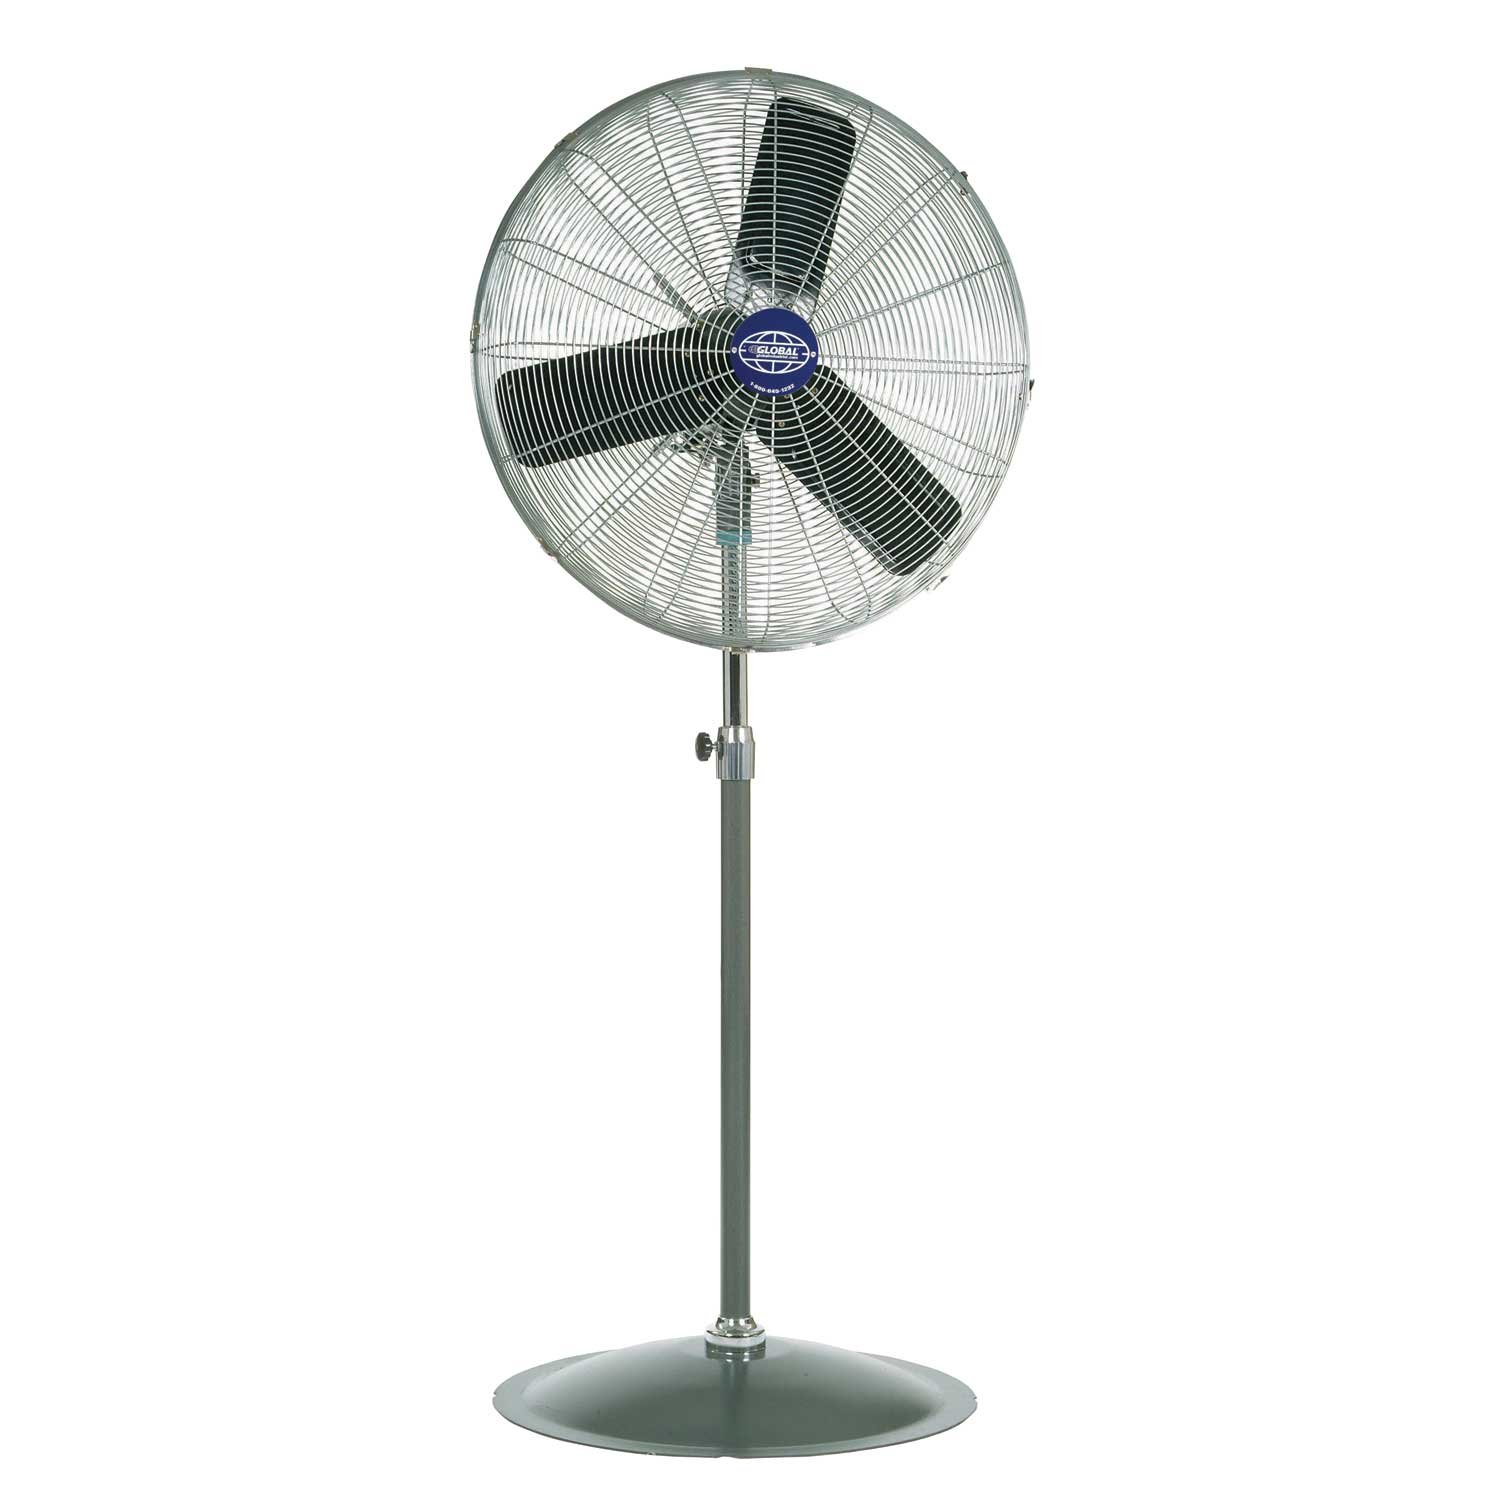 Oscillating Pedestal Fan, 30 Diameter, 1 3hp, 8775cfm